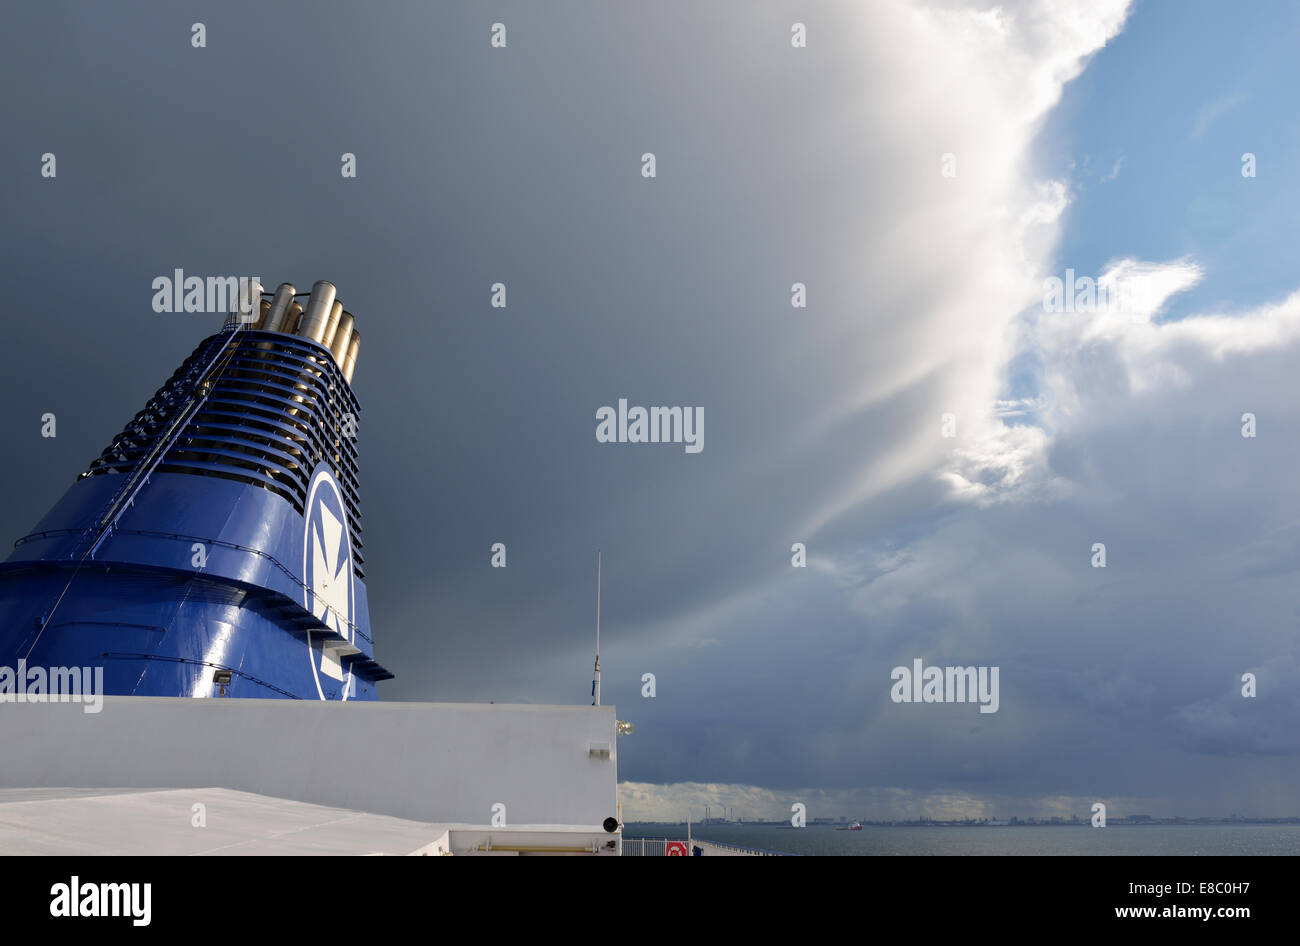 Baltic Sea Squall, View from Copenhagen Ferry to Oslo, Norway 140818_62382 - Stock Image